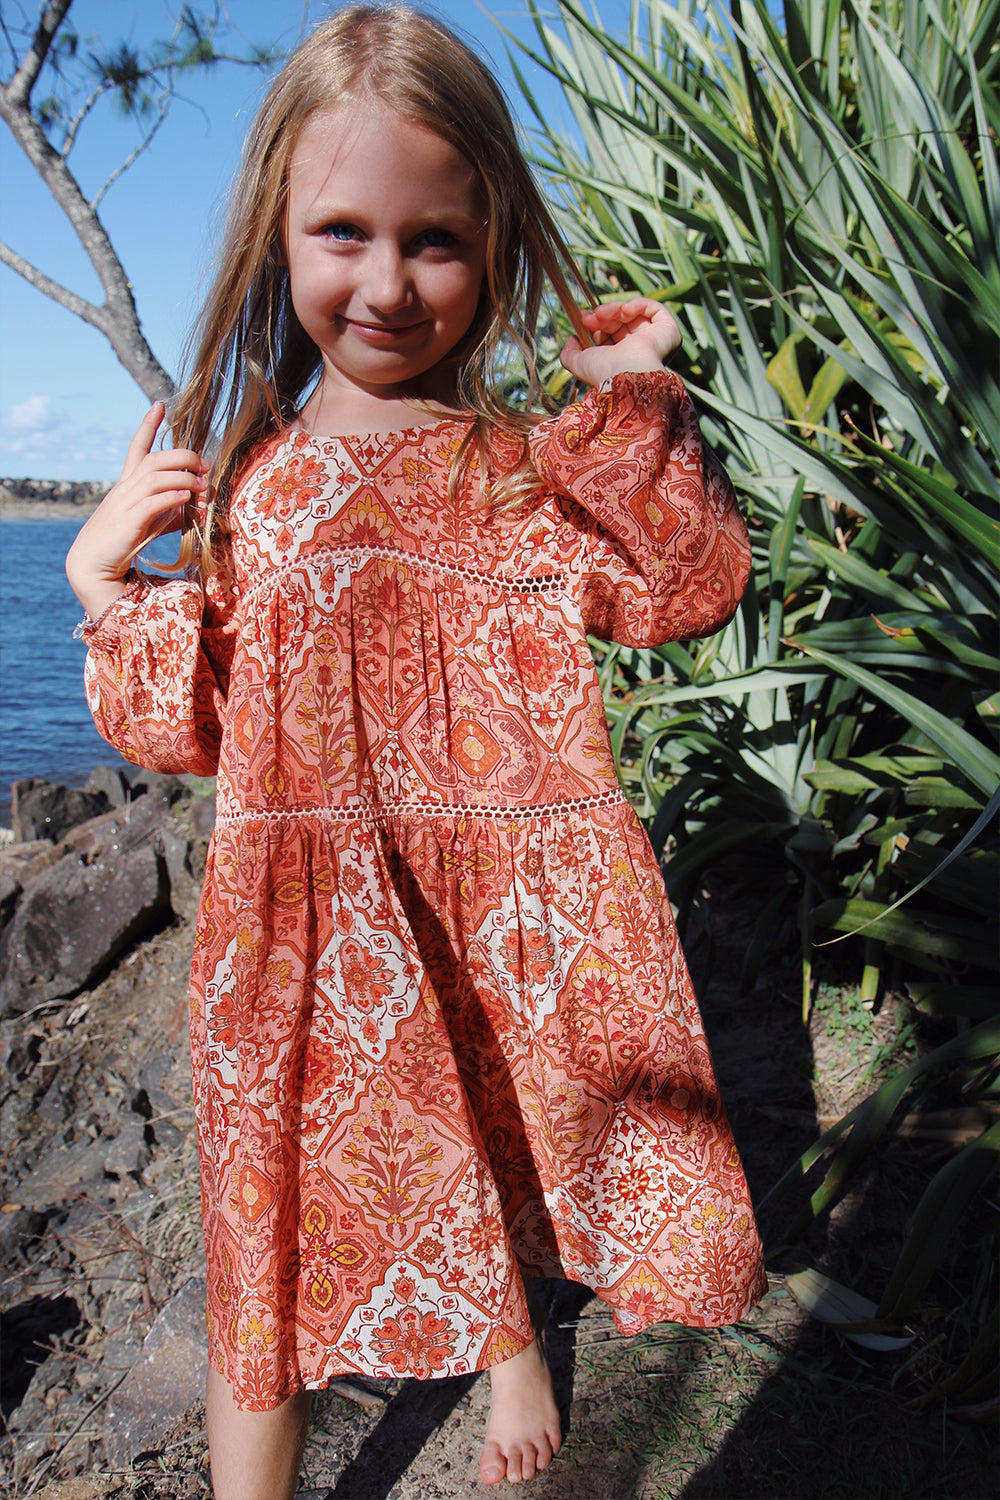 Zephyr Littles Dress in Rhubarb